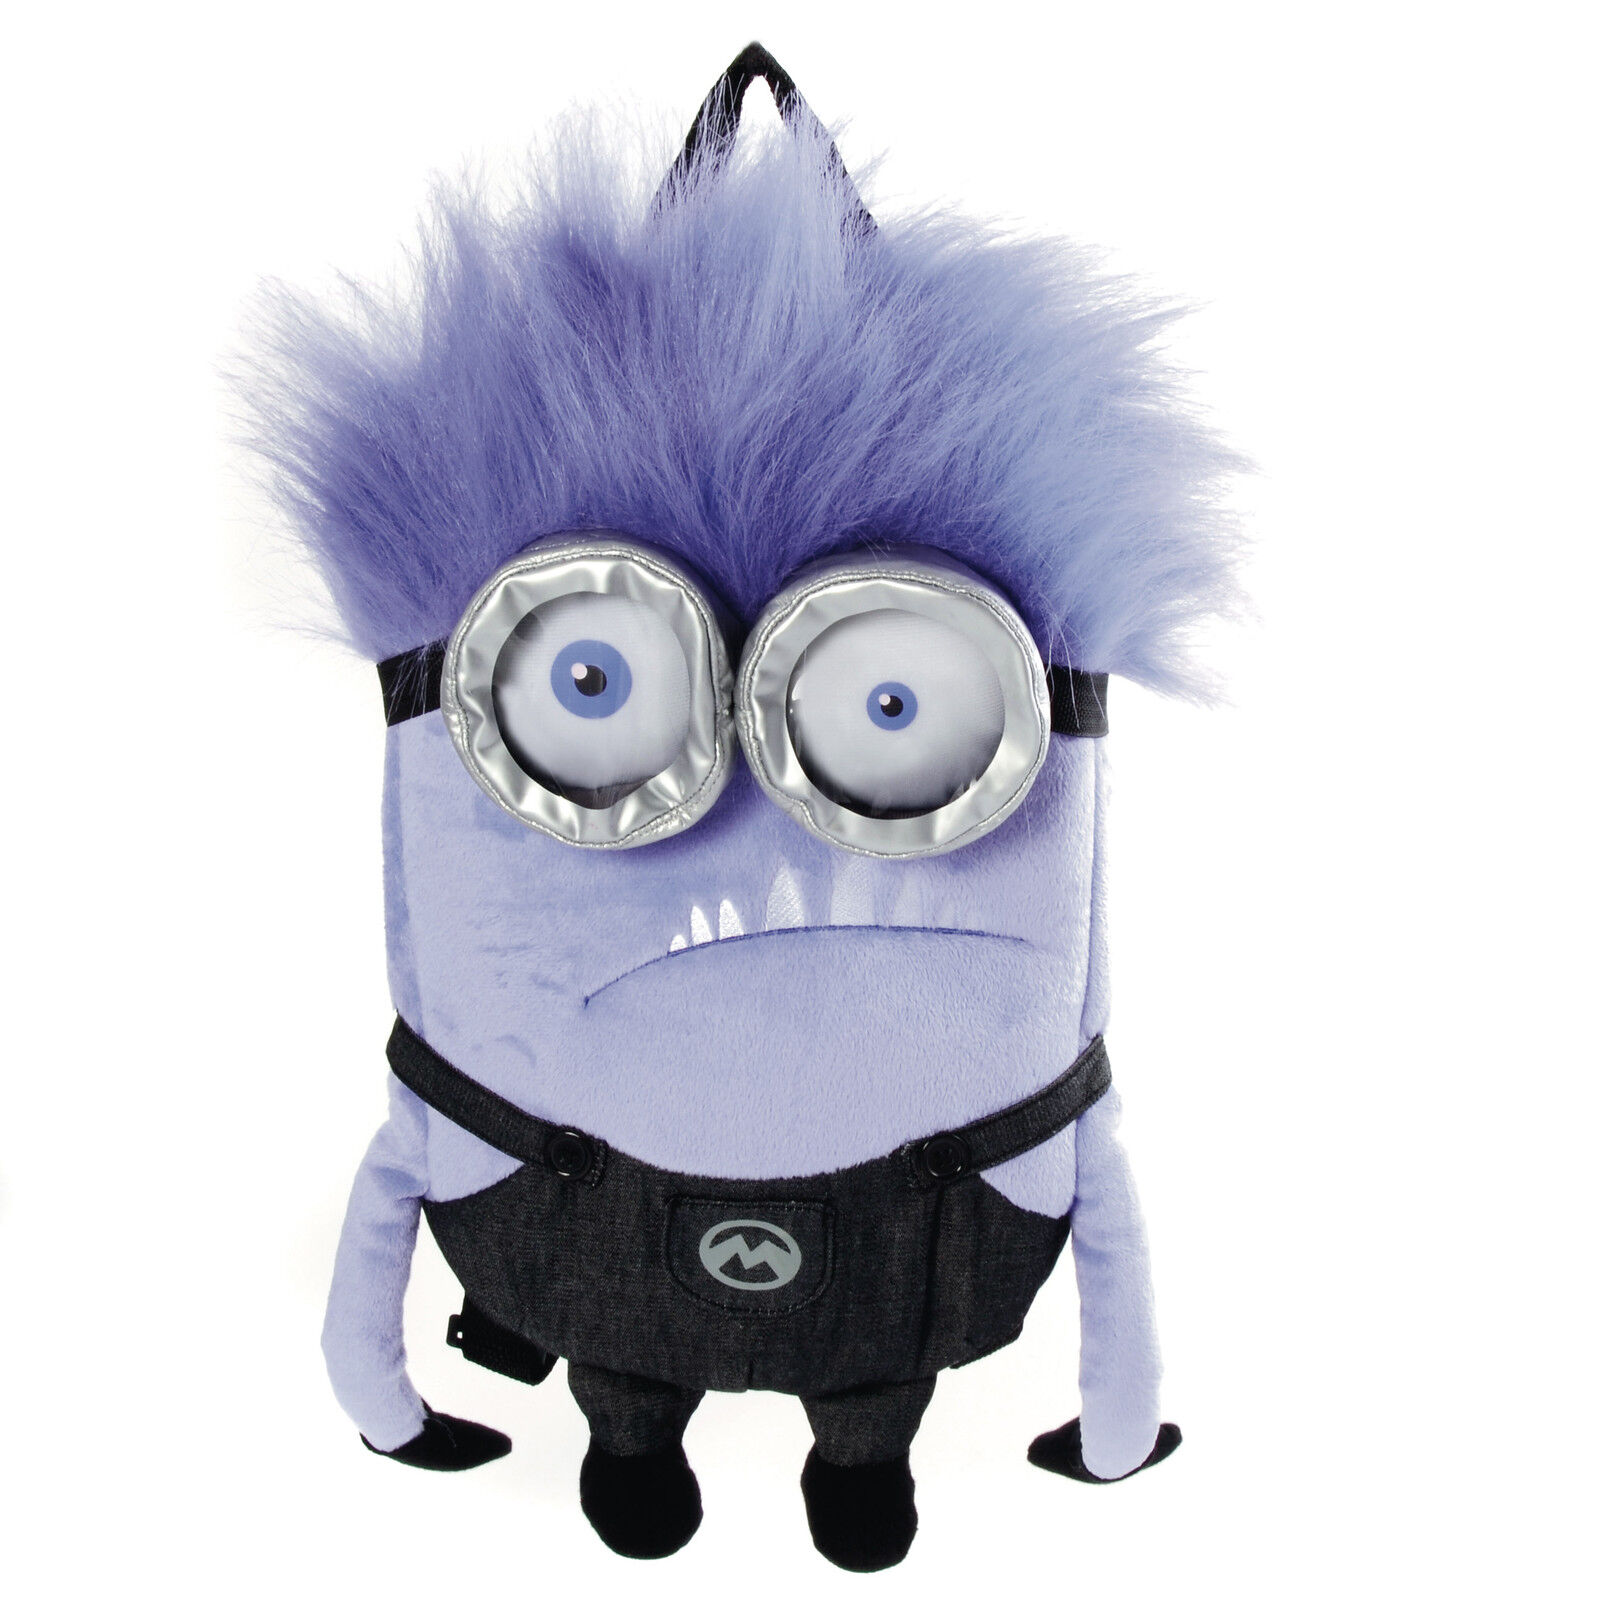 OFFICIAL DESPICABLE ME PURPLE MINION CHILD BACKPACK ... | 1600 x 1600 jpeg 225kB